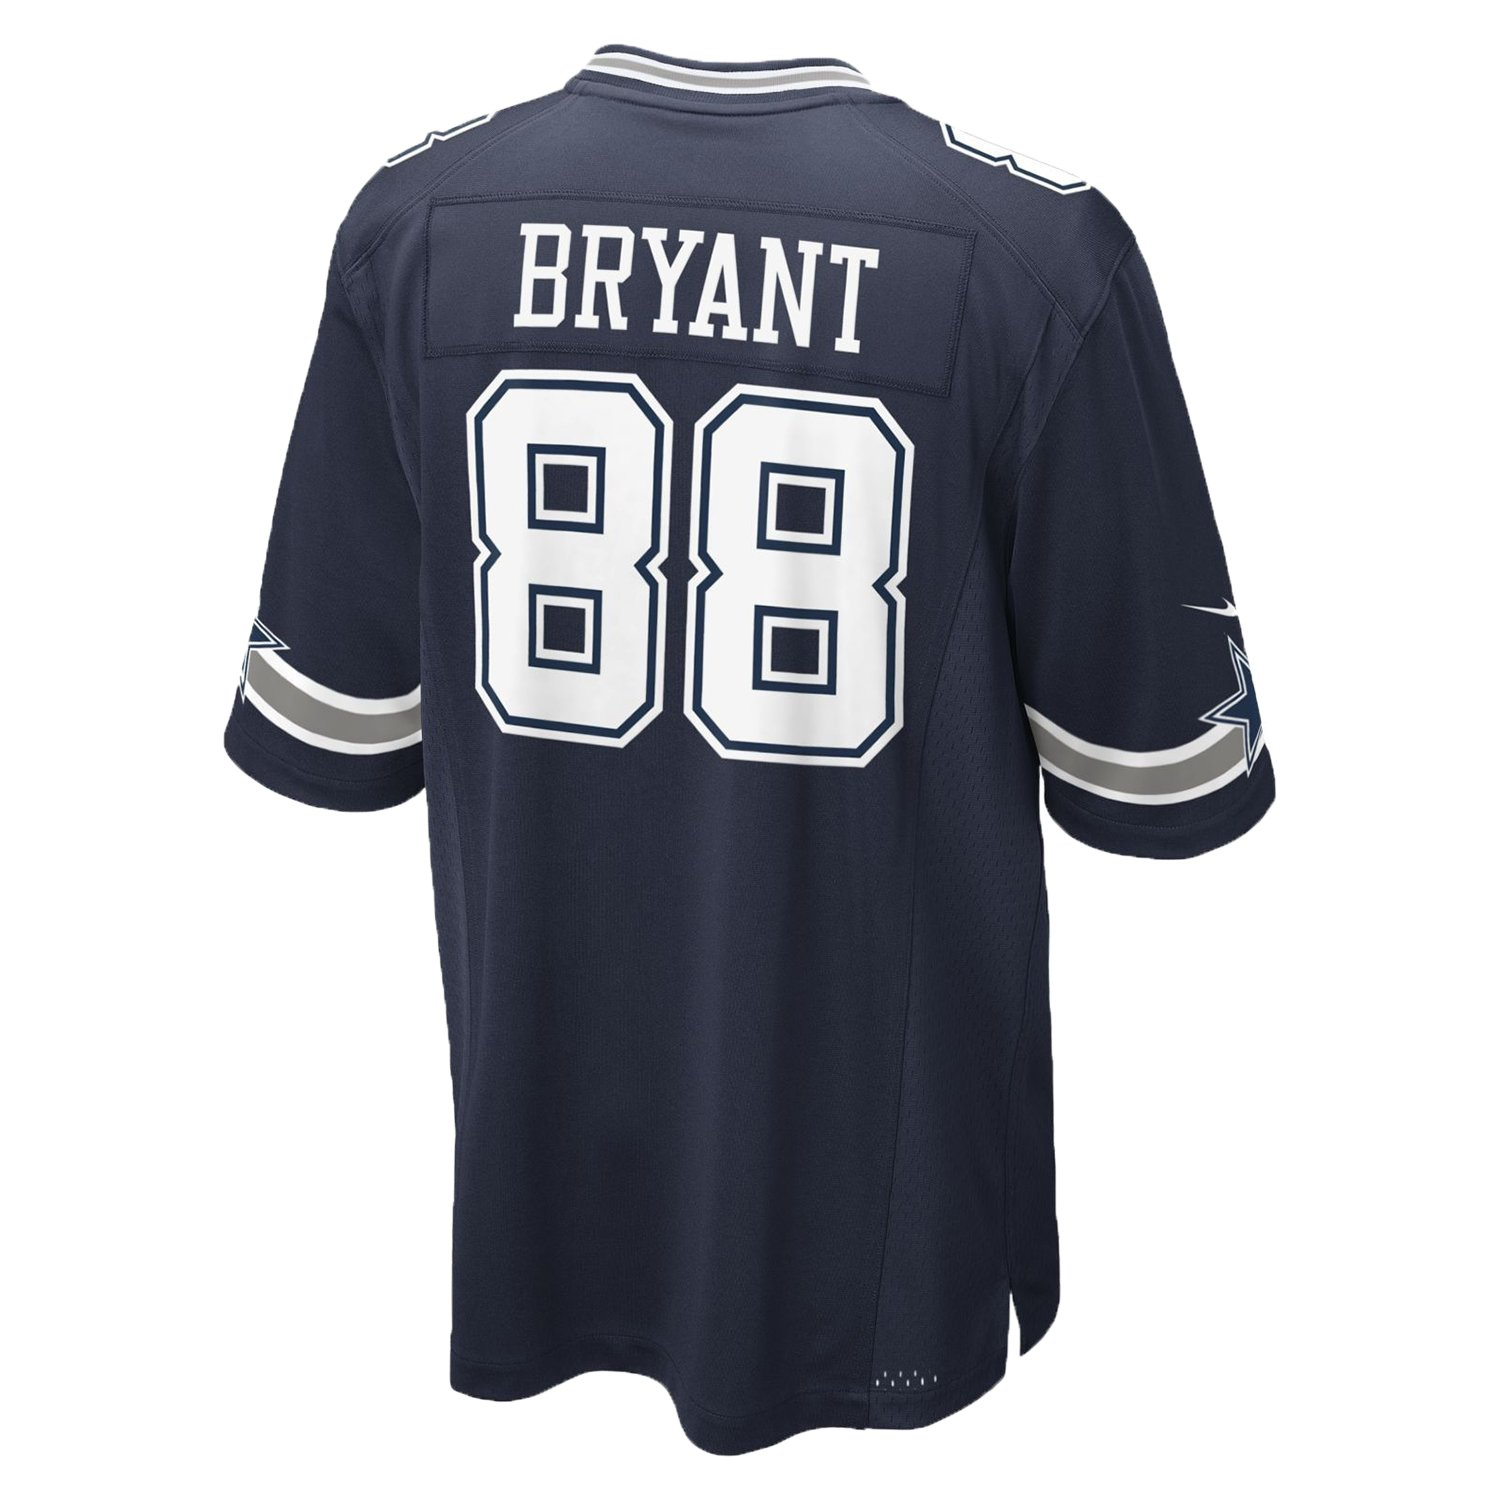 16129667821 Amazon.com   Nike Mens NFL Dallas Cowboys Dez Bryant 88 Jersey Navy Blue    Sports   Outdoors